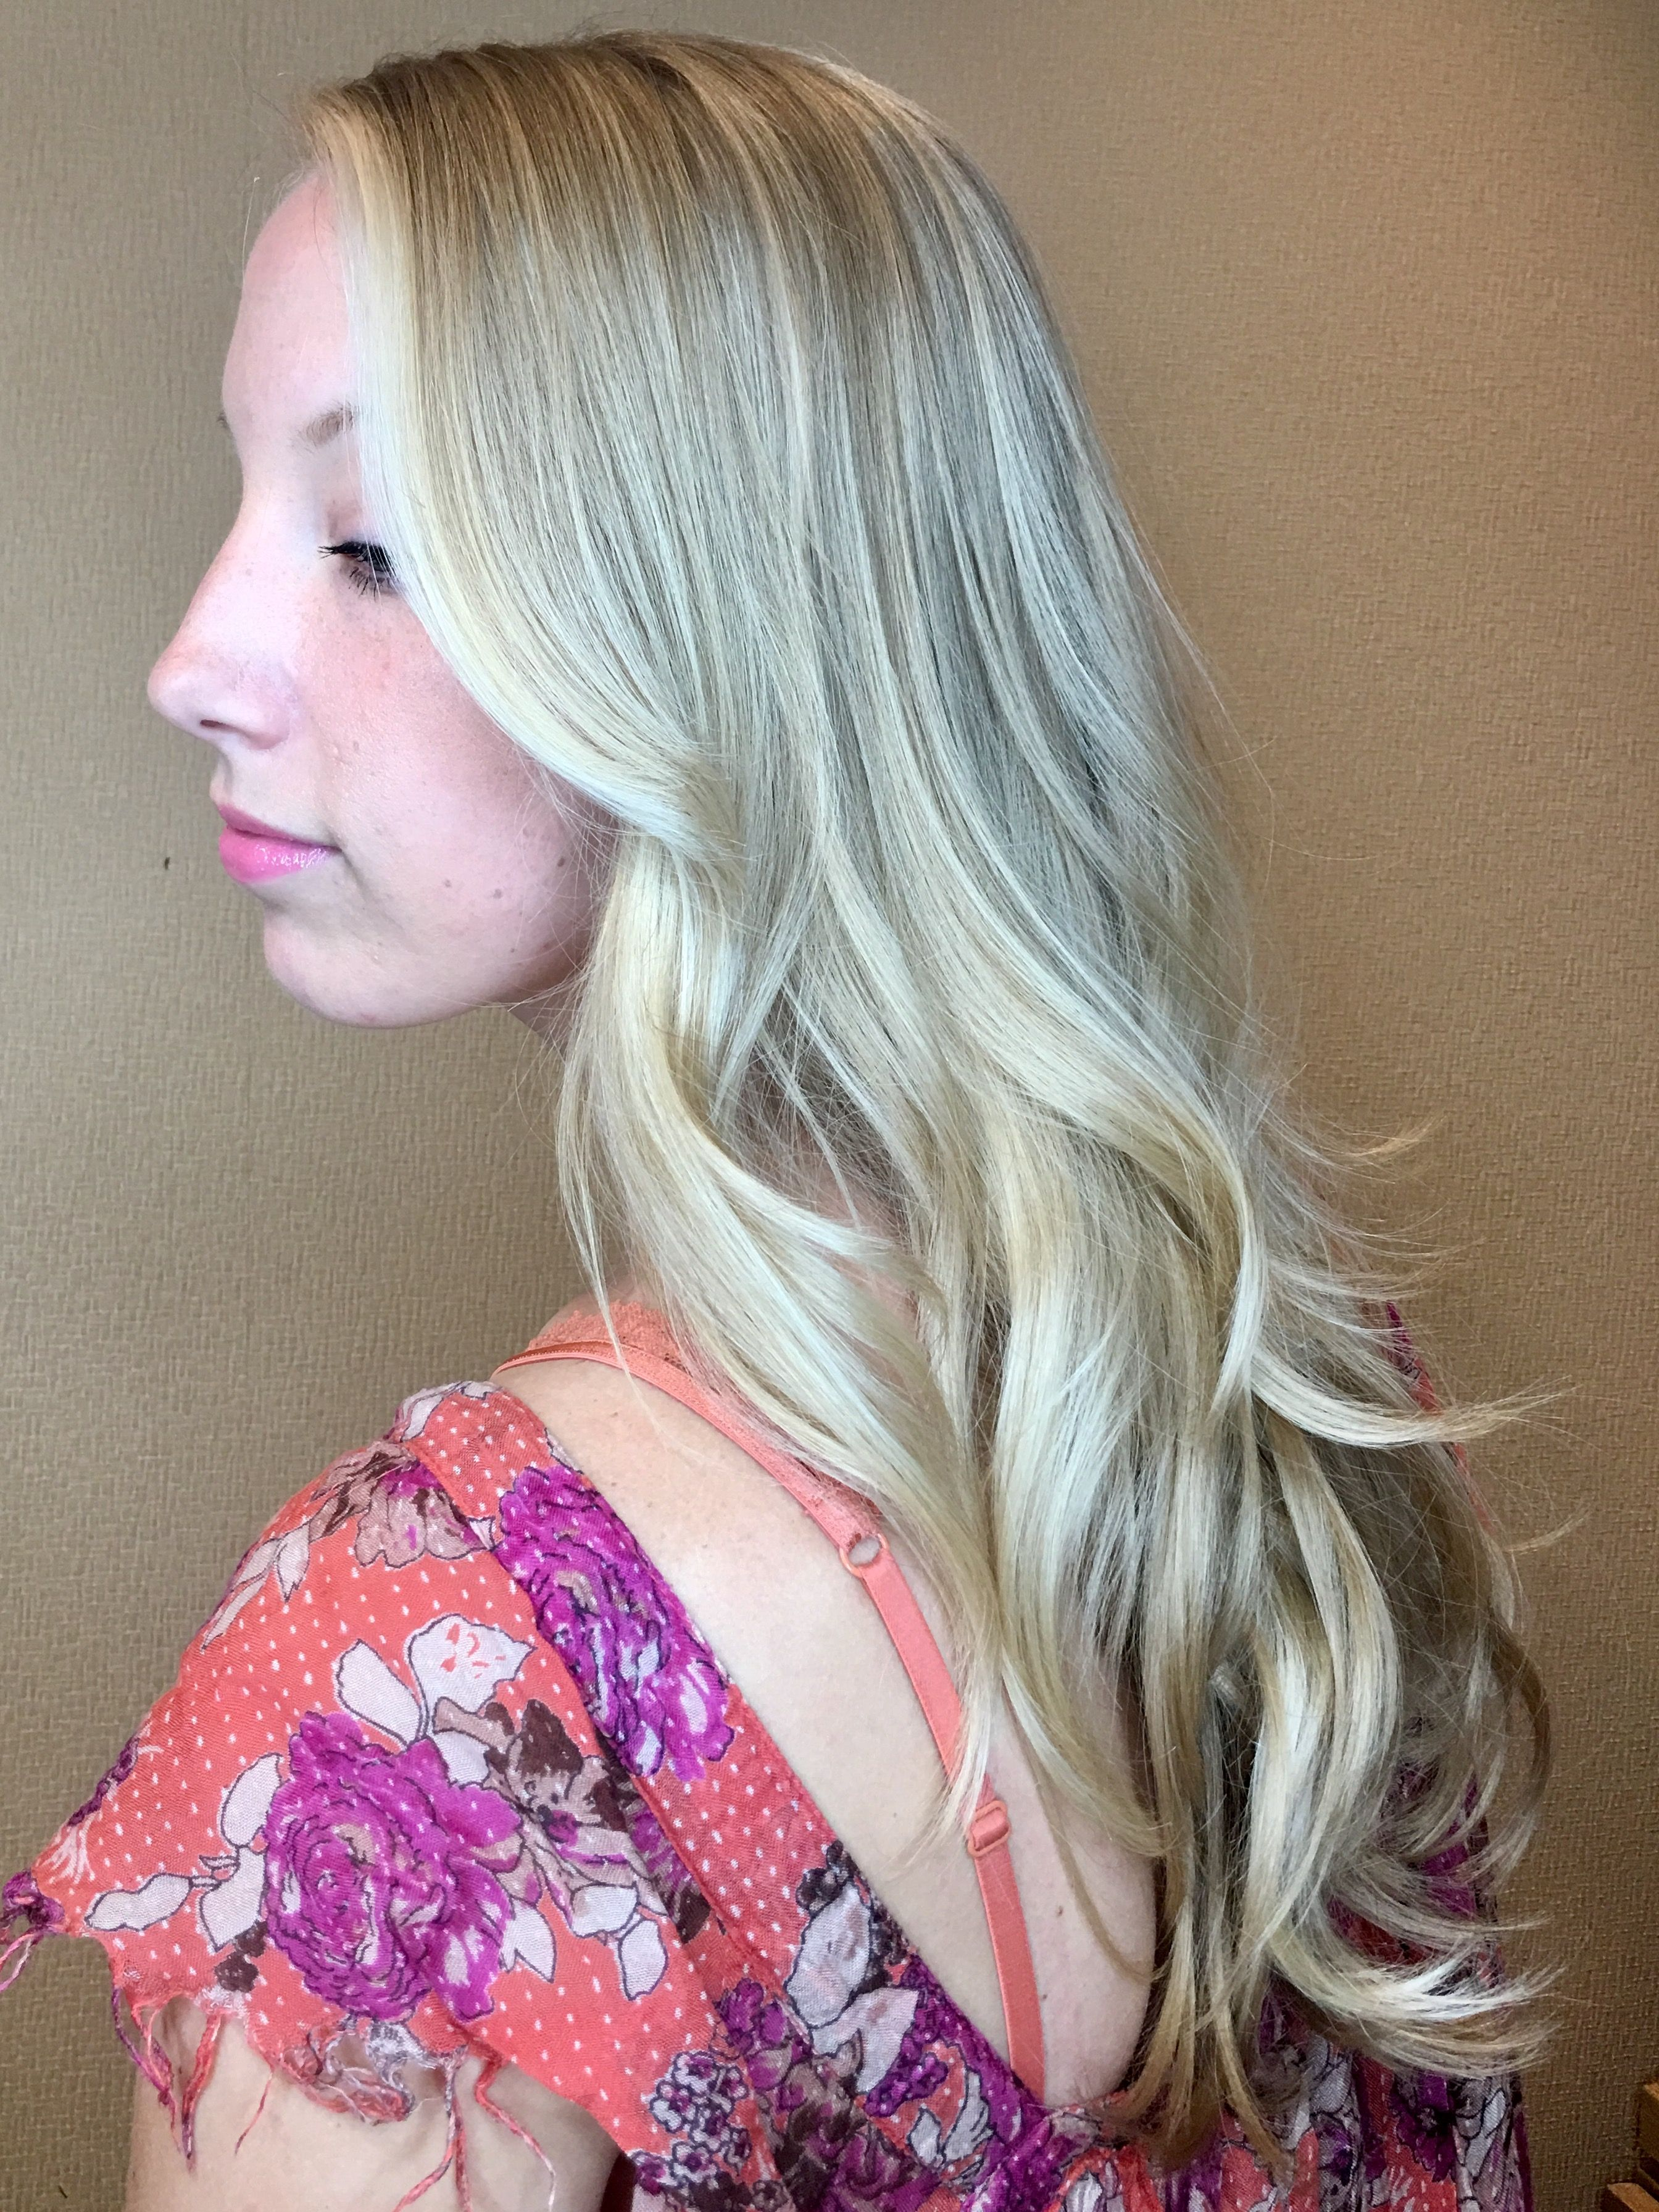 Live The Blonde Life Haircolor By Joico Guest Artist Zoe Carpenter